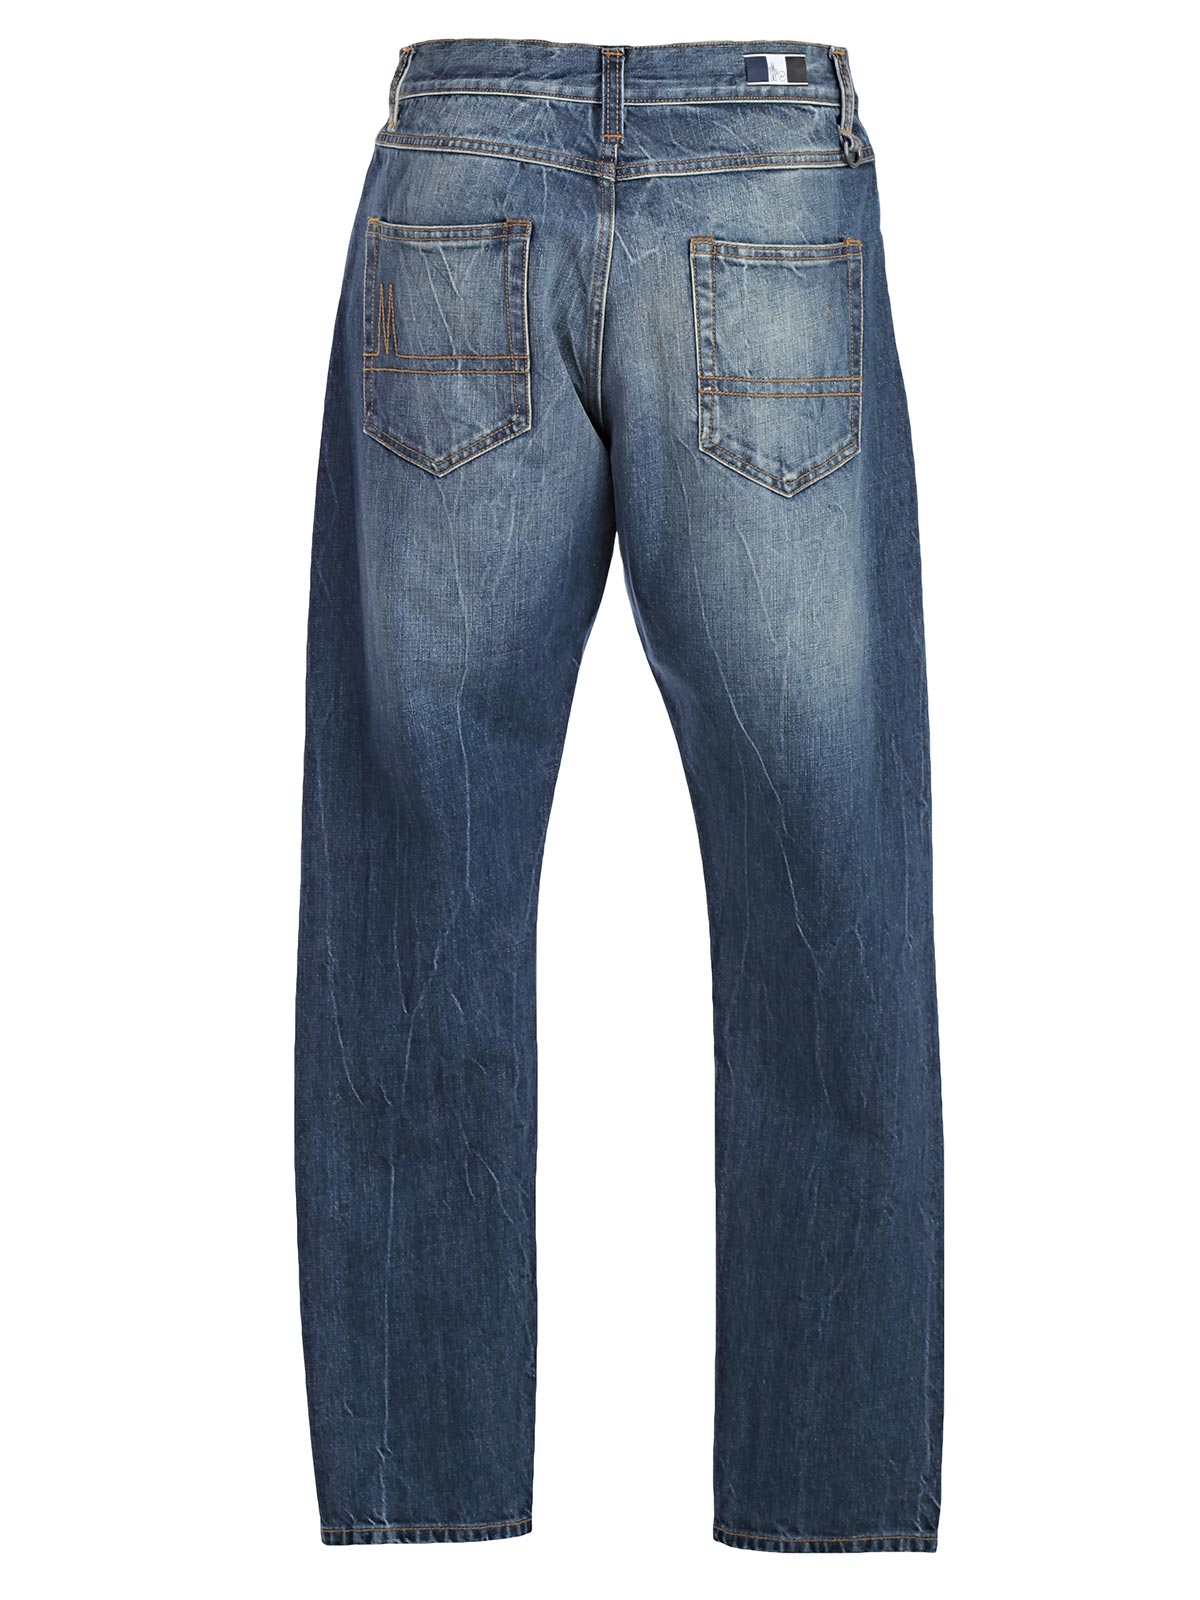 Picture of Moncler Genius Jeans